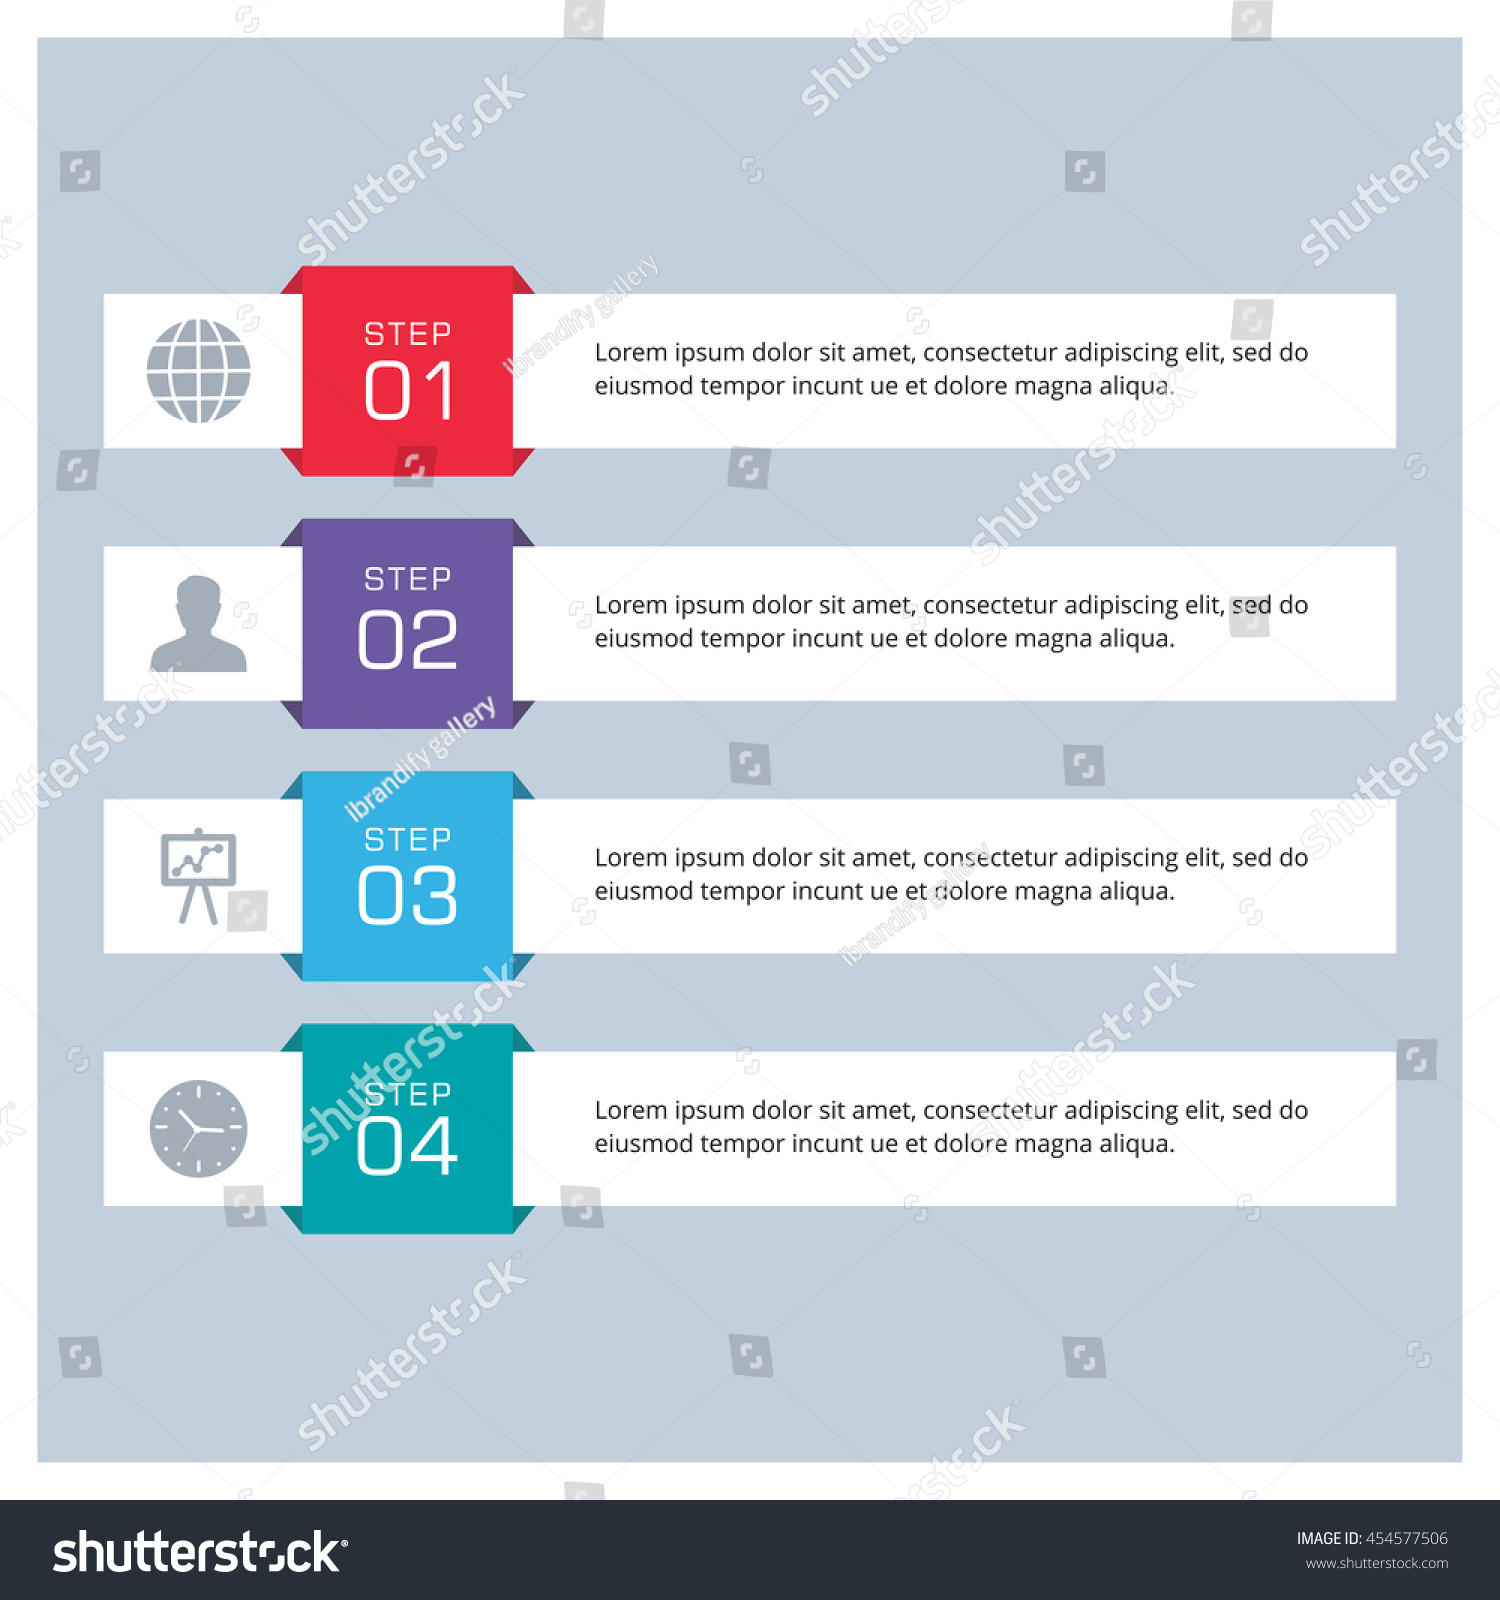 stock vector icon template with border template for circle diagram graph presentation and chart business 454577506 wiring diagram excel 33rko excel class \u2022 indy500 co wiring diagram template for excel at eliteediting.co